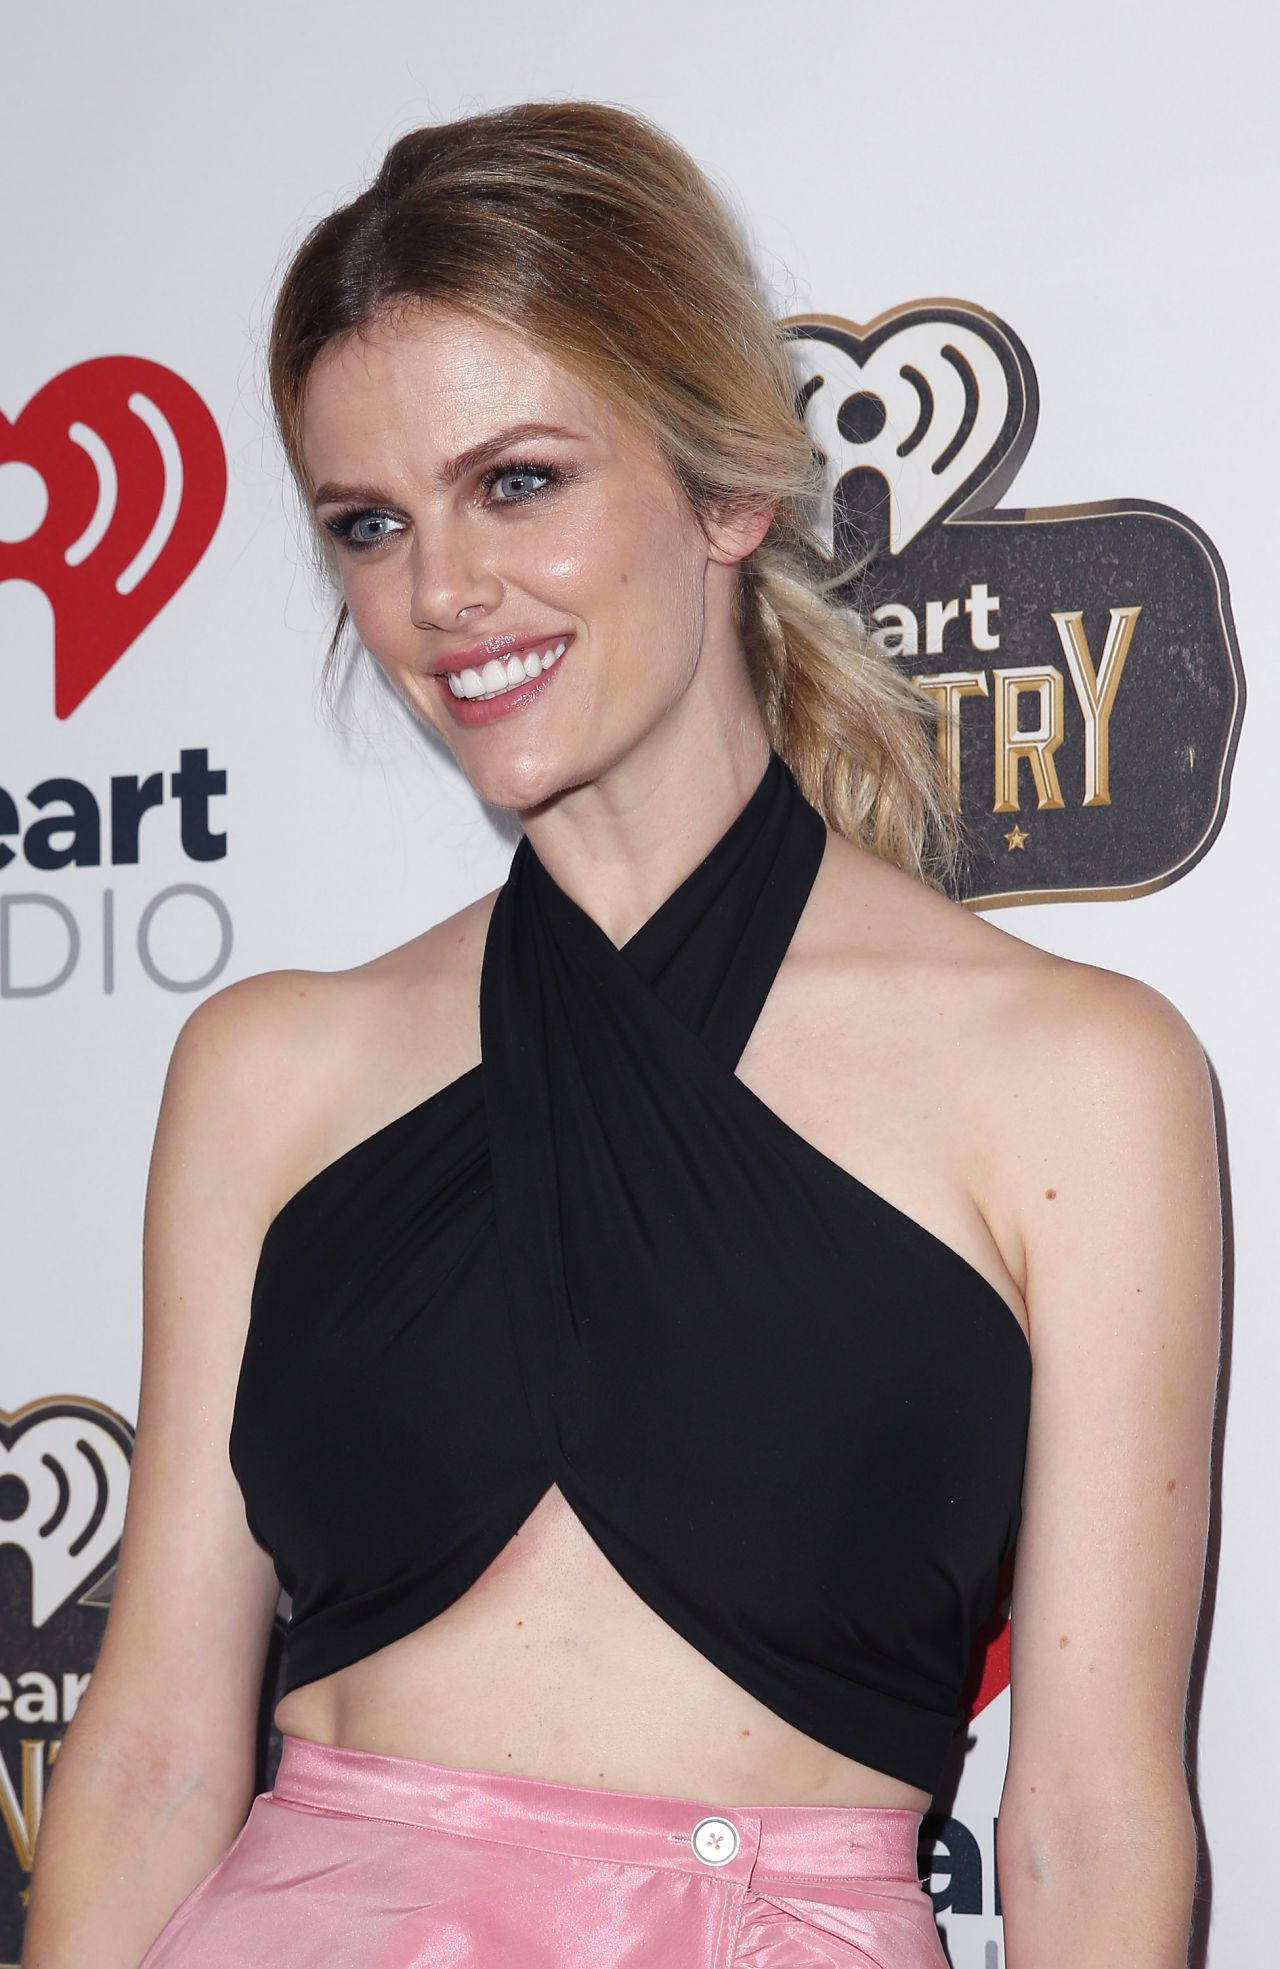 Brooklyn Decker - 2016 iHeartCountry Festival in Austin, TX Brooklyn Decker